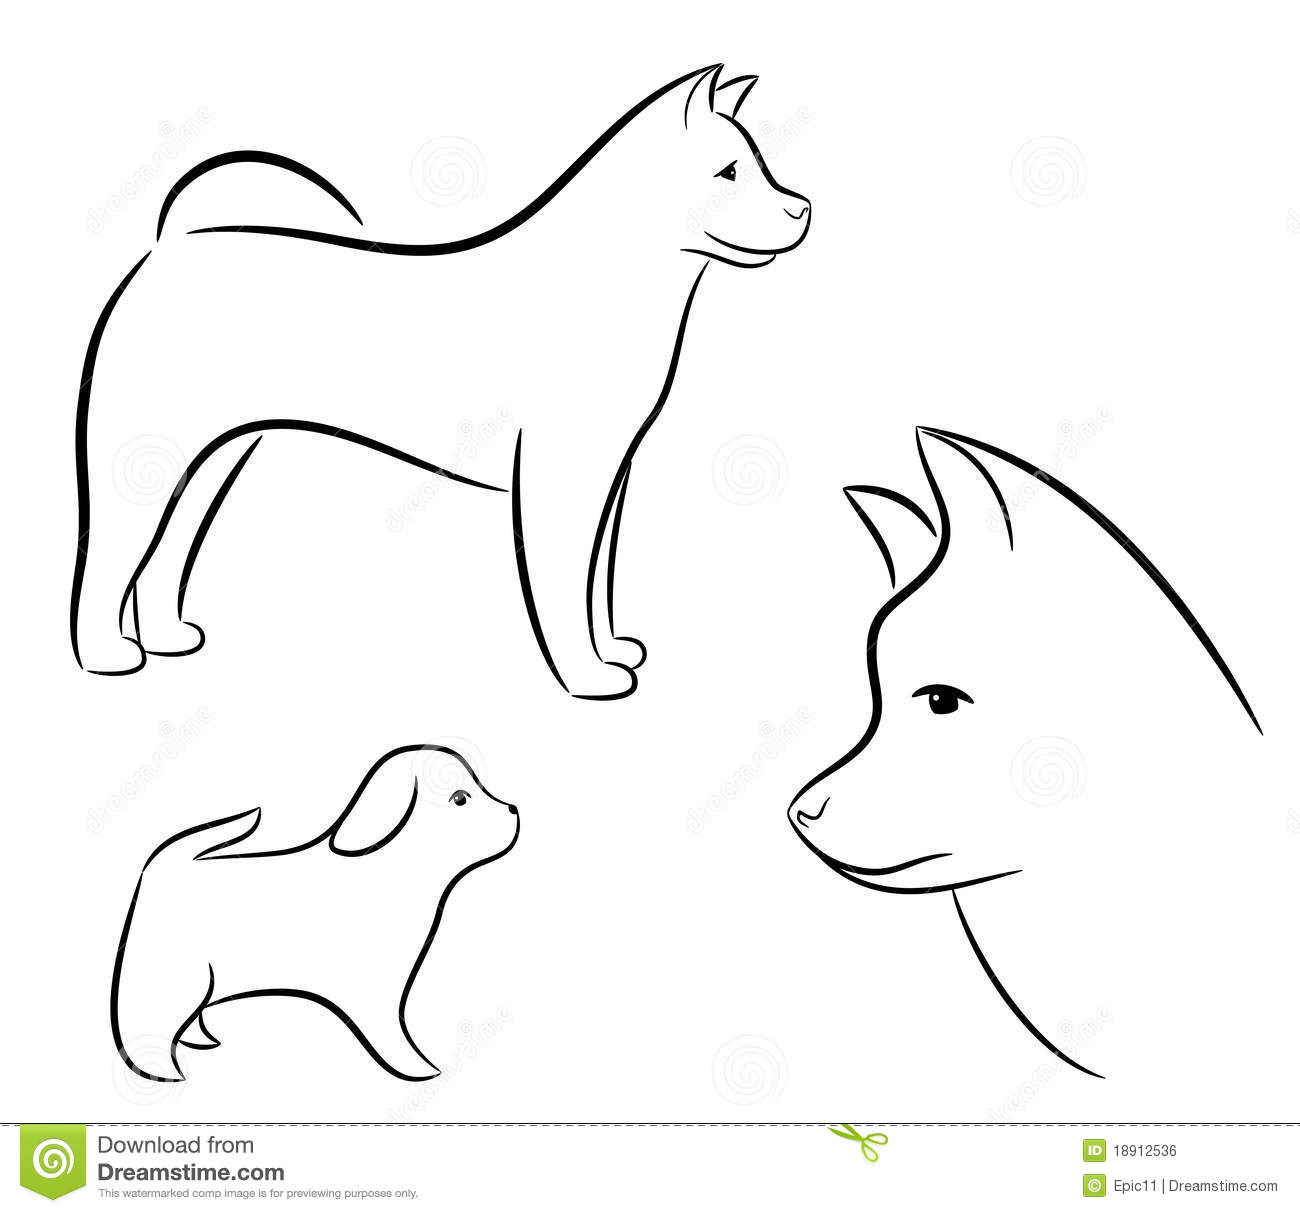 Cartoon Silhouette Of A Dog Royalty Free Stock Image